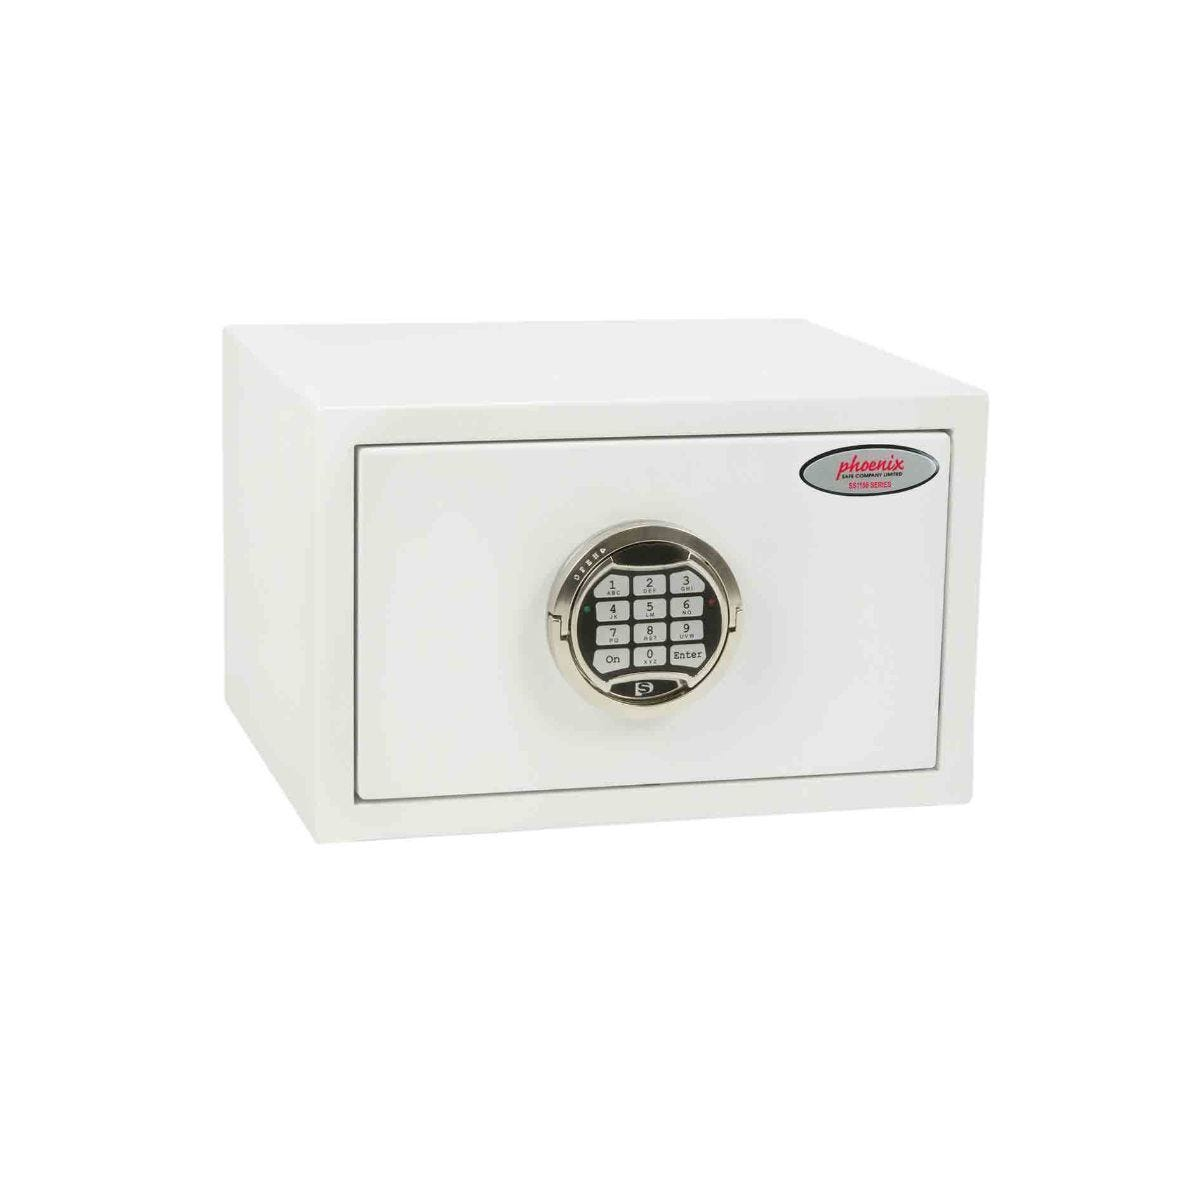 Phoenix Fortress S2 Security Safe with Electronic Lock Size 1